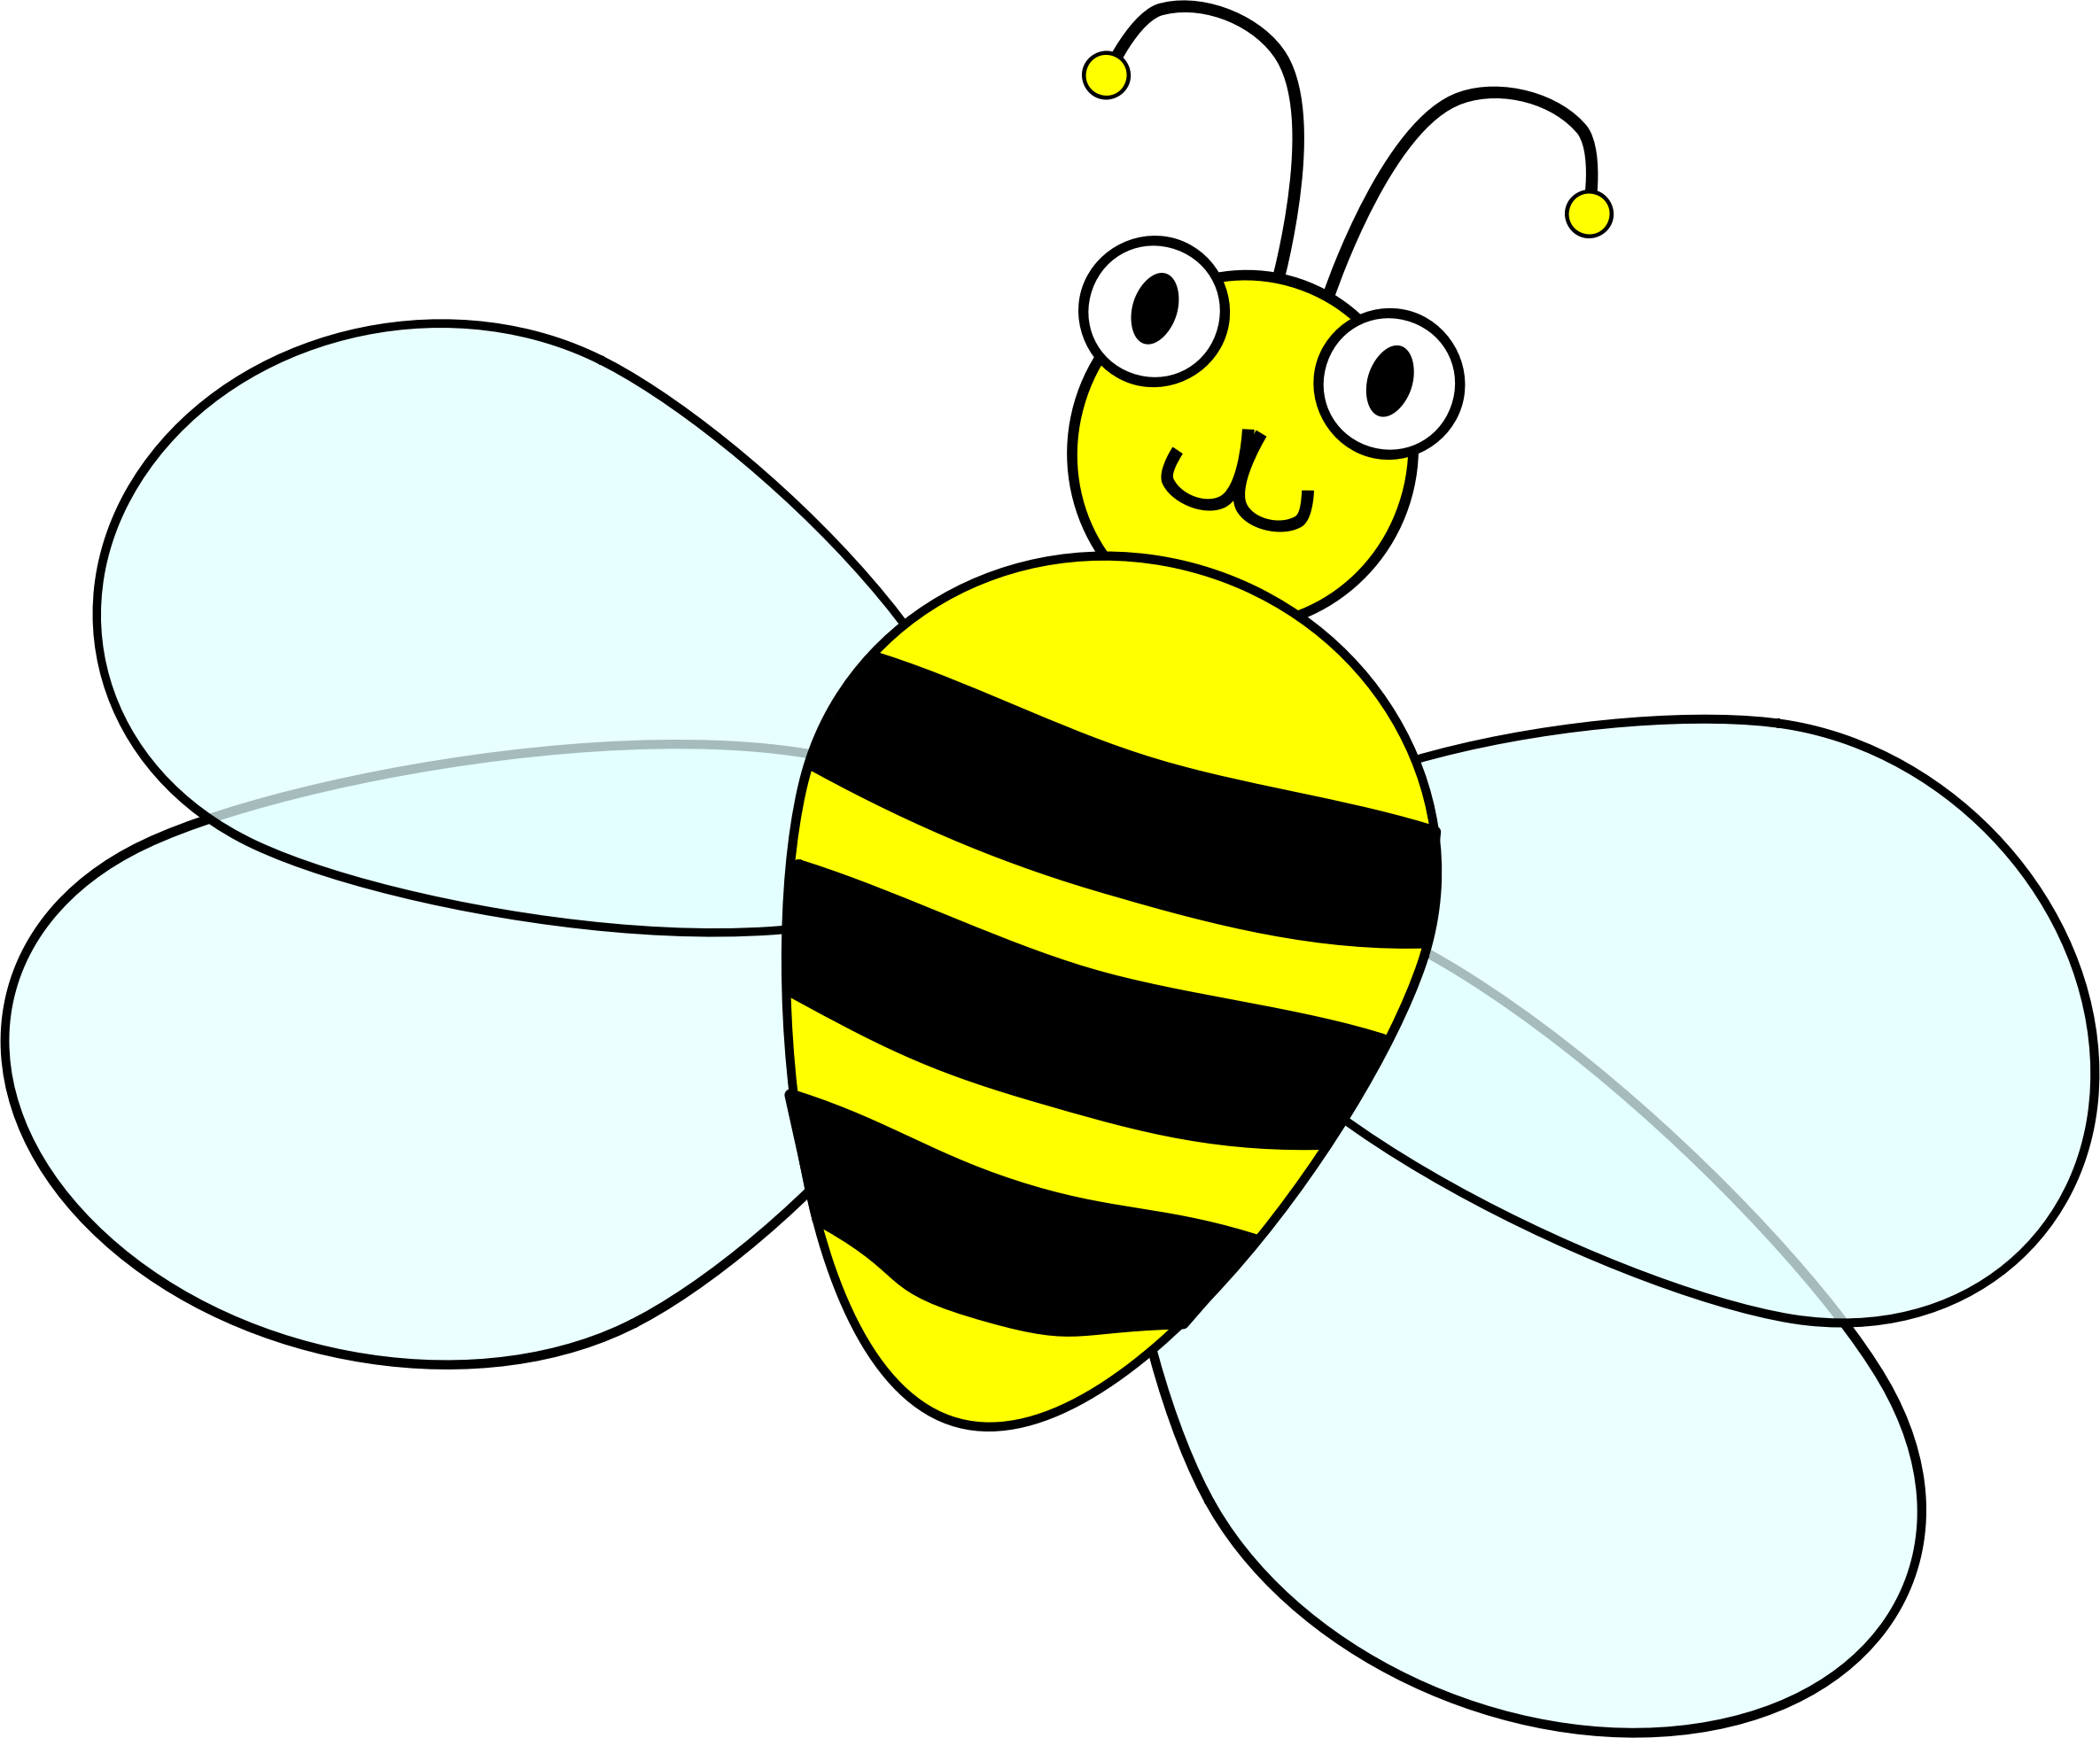 Spelling bee contest mascot by ecelis